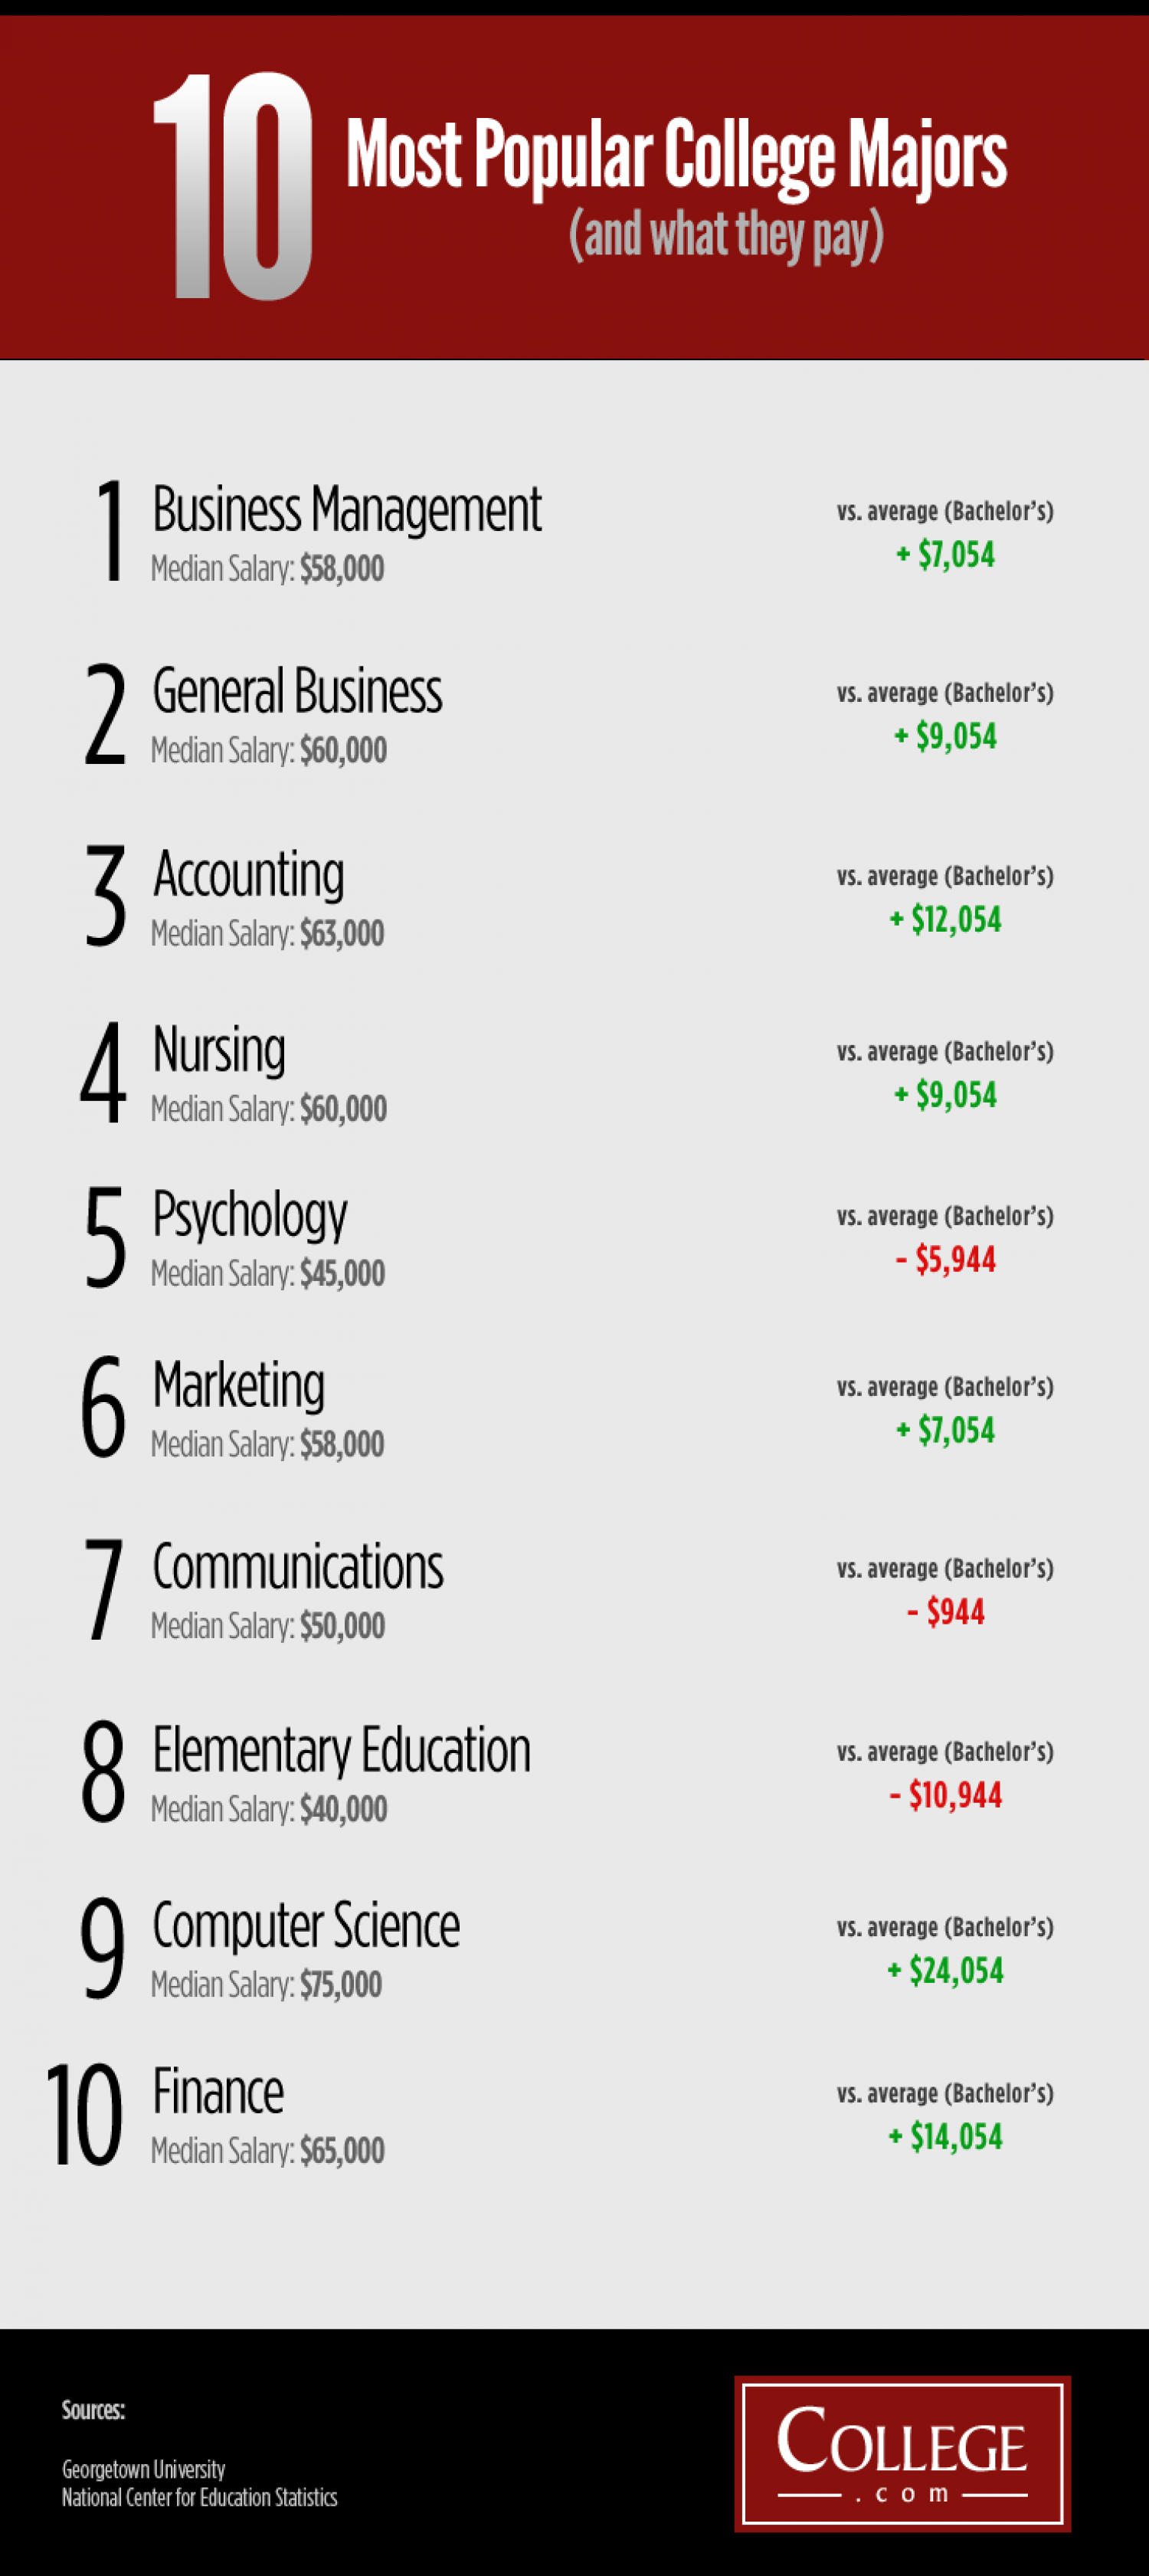 10 Most Popular College Majors (and what they pay) Infographic